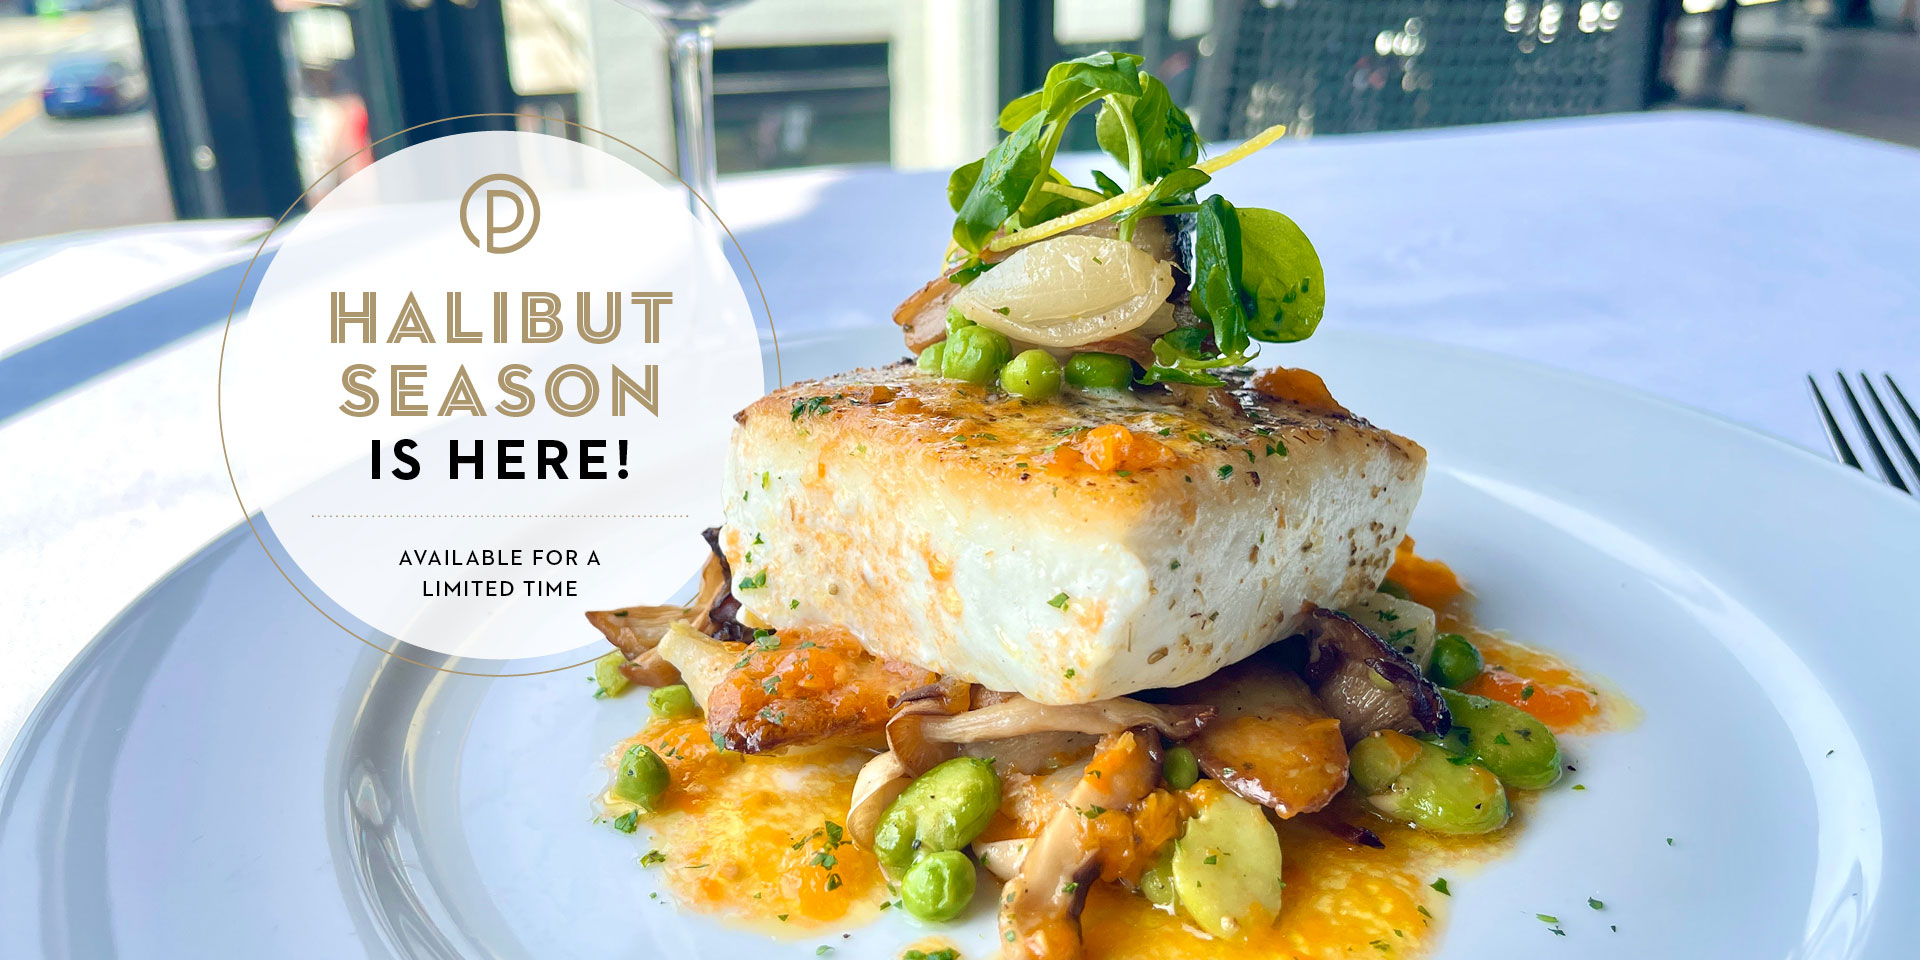 Halibut Season is here. Available for a limited time.